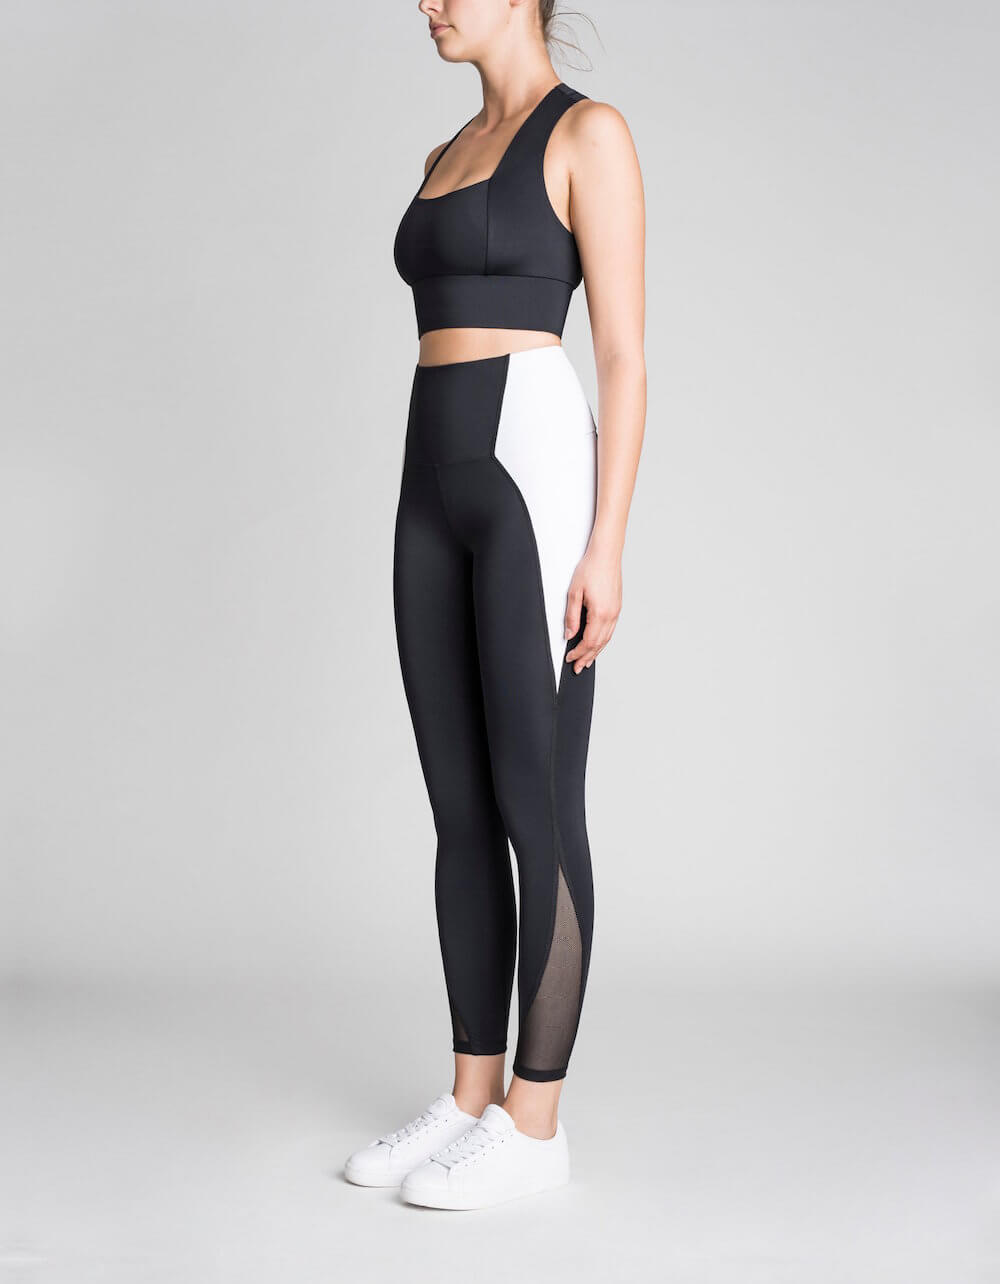 10 High Waisted Workout Leggings For Ultimate Comfort And